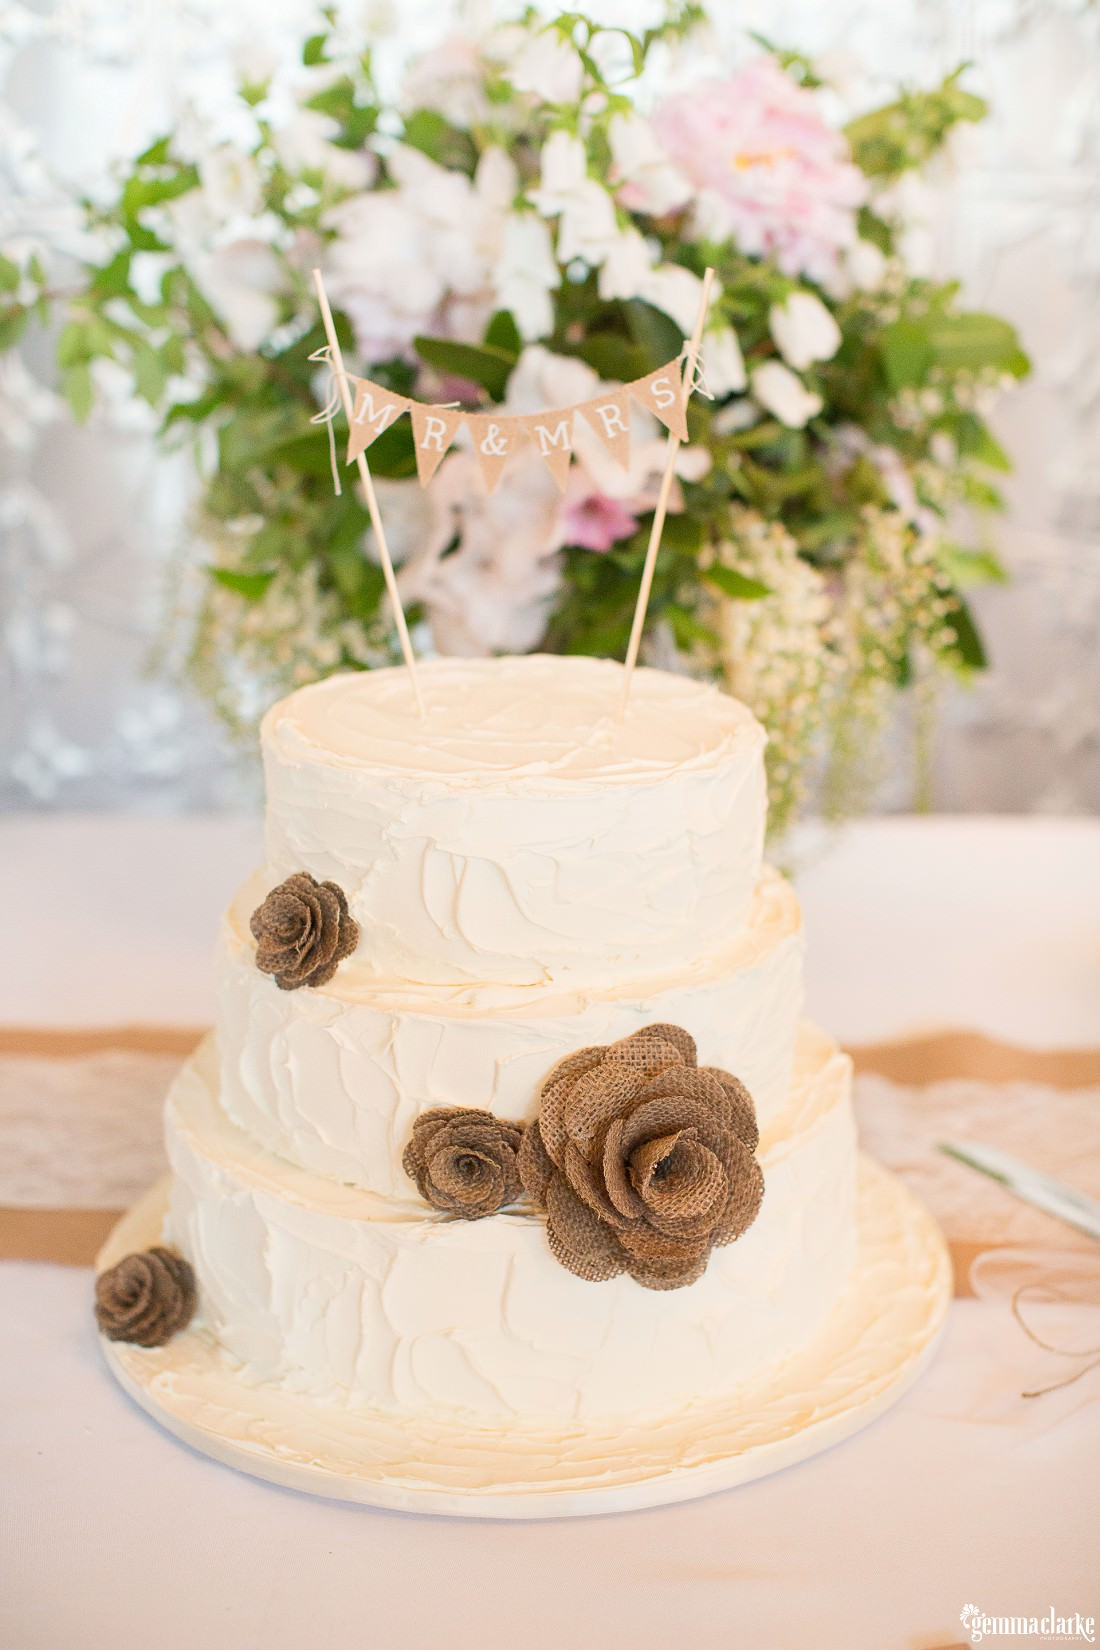 Three tiered wedding cake with hessian flowers - Mali Brae Farm Wedding